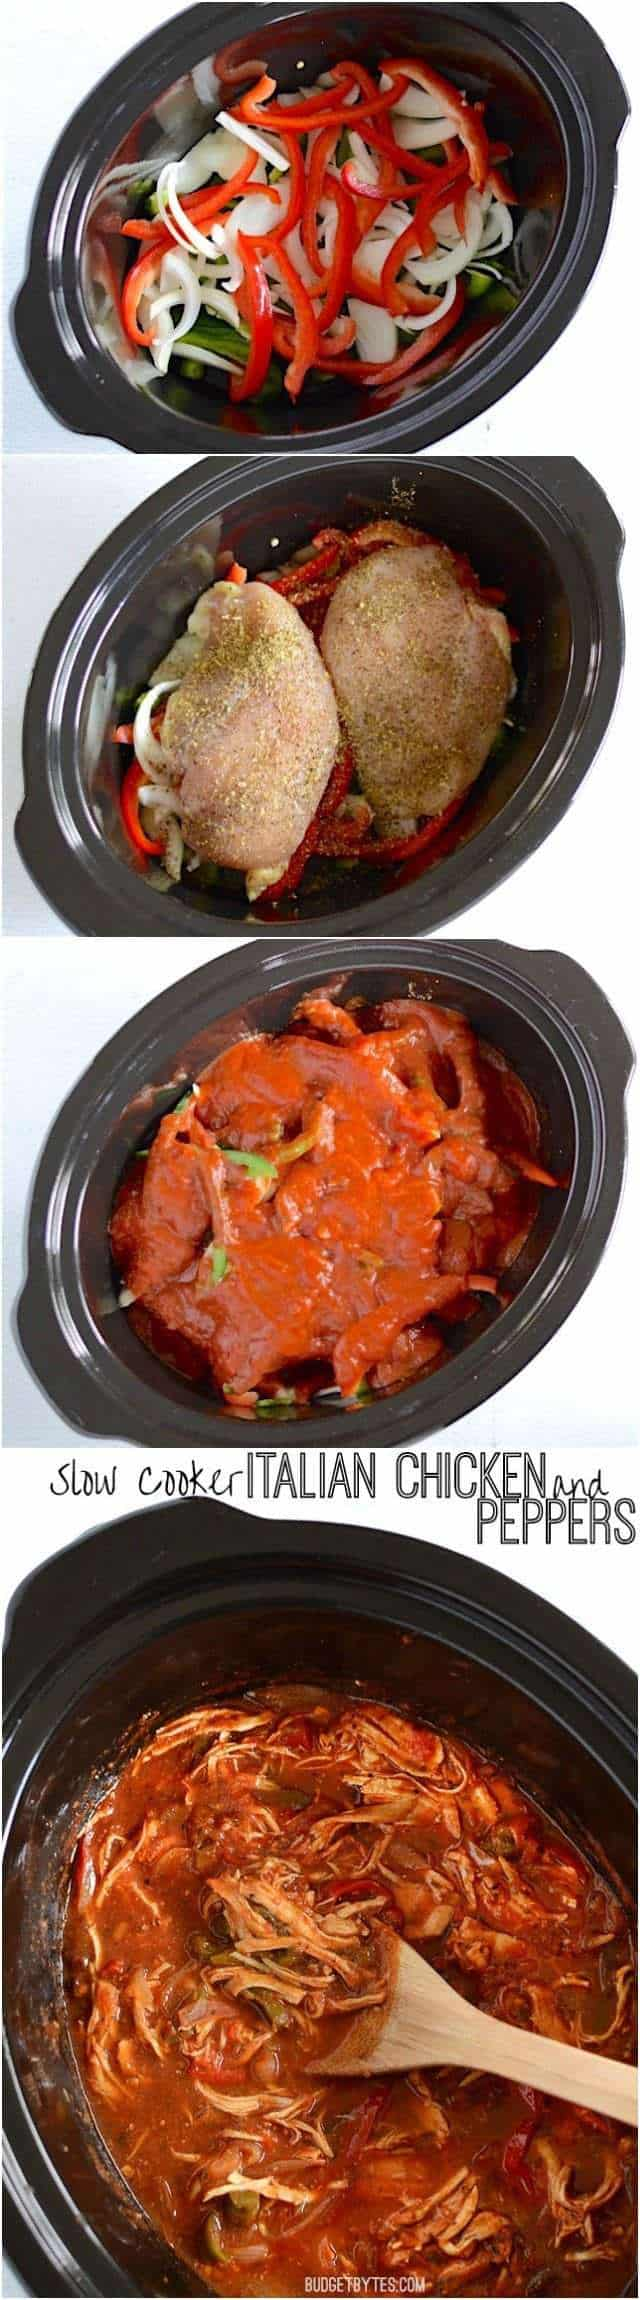 Slow Cooker Italian Chicken and Peppers - BudgetBytes.com